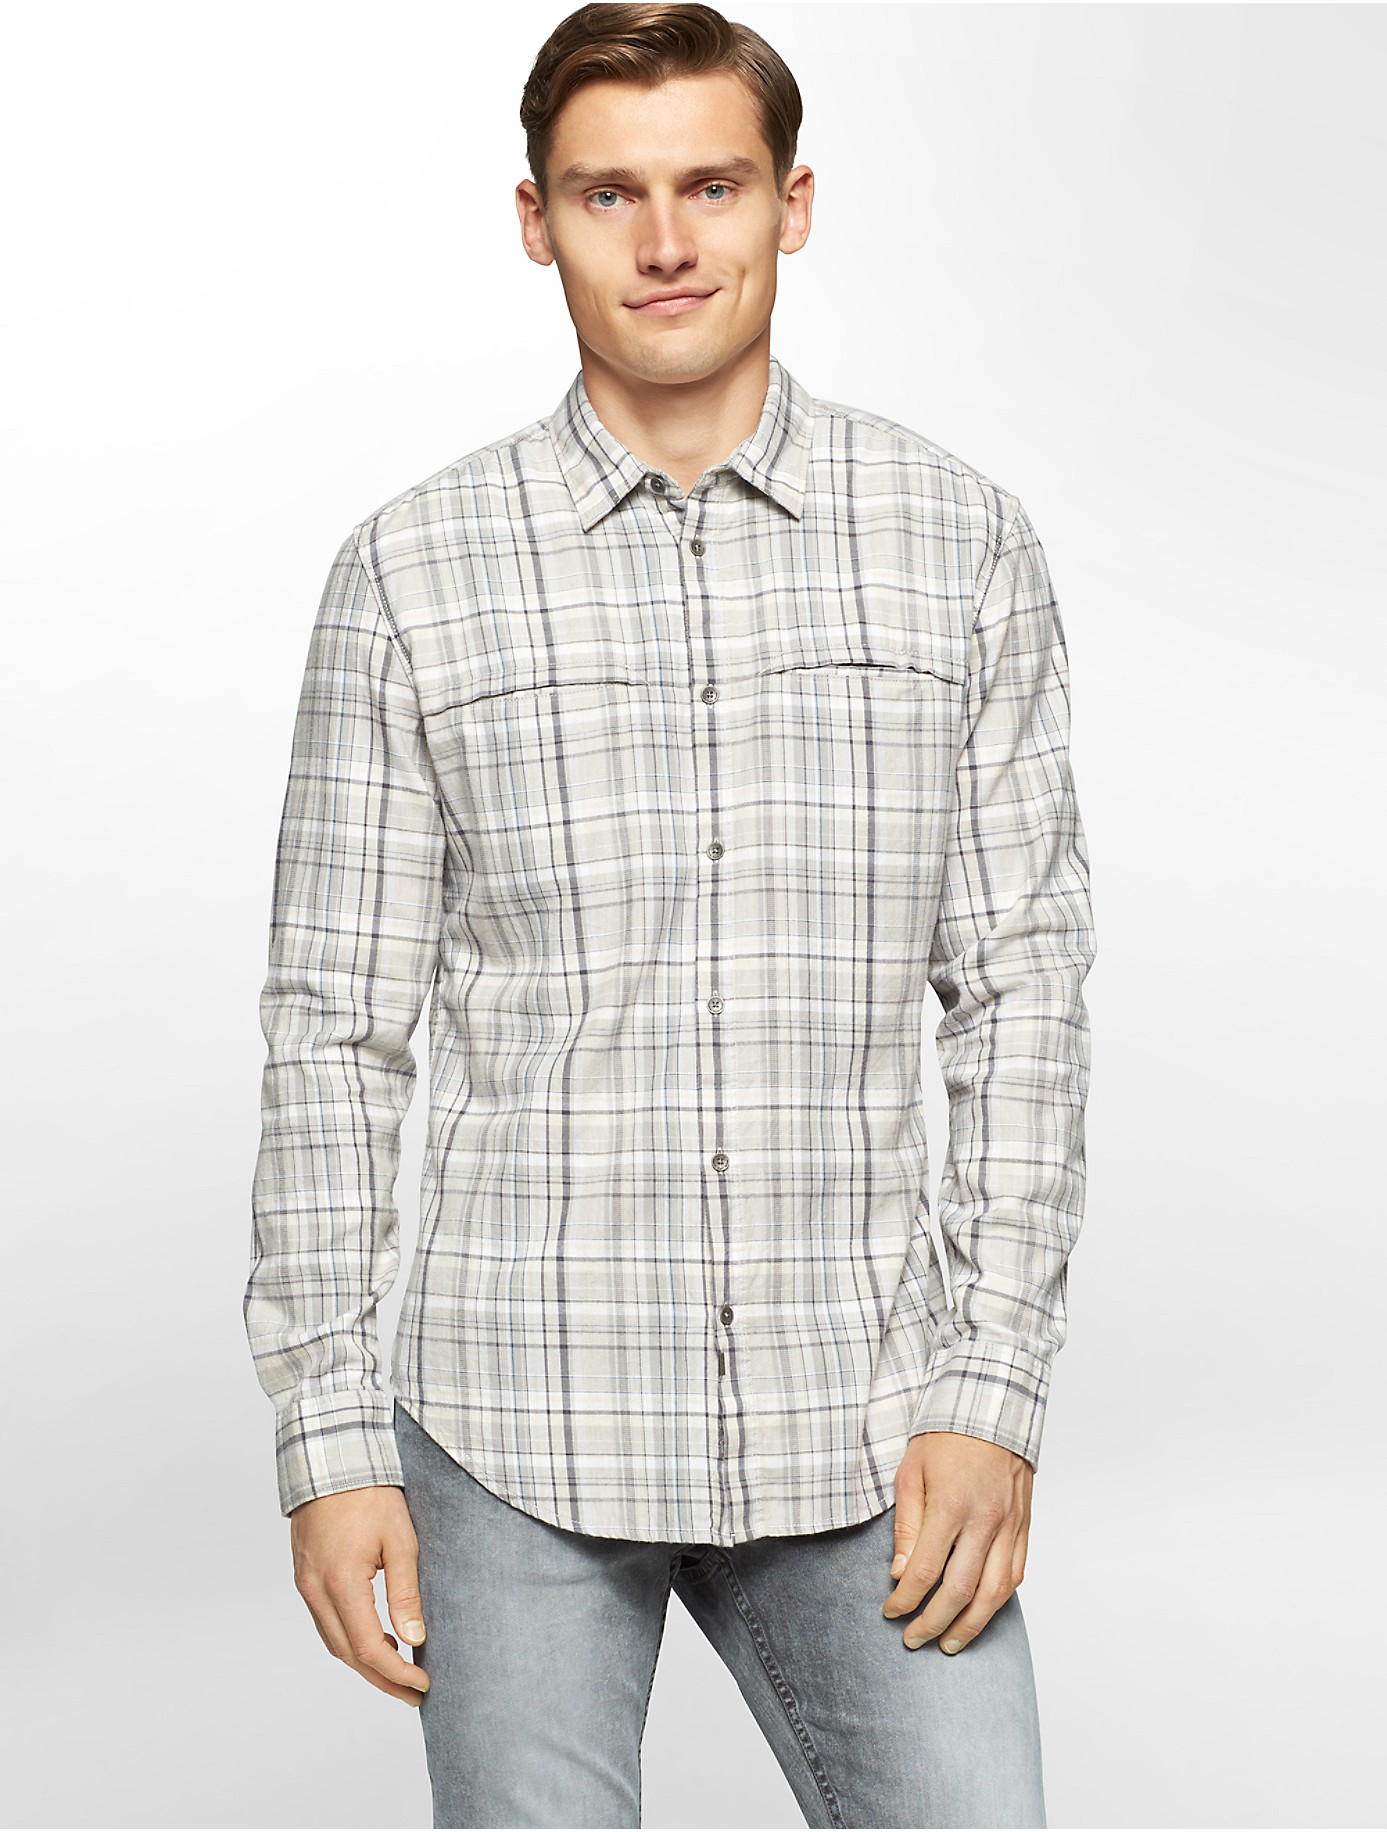 Calvin Klein Jeans Slim Fit Brushed Twill Plaid Shirt In